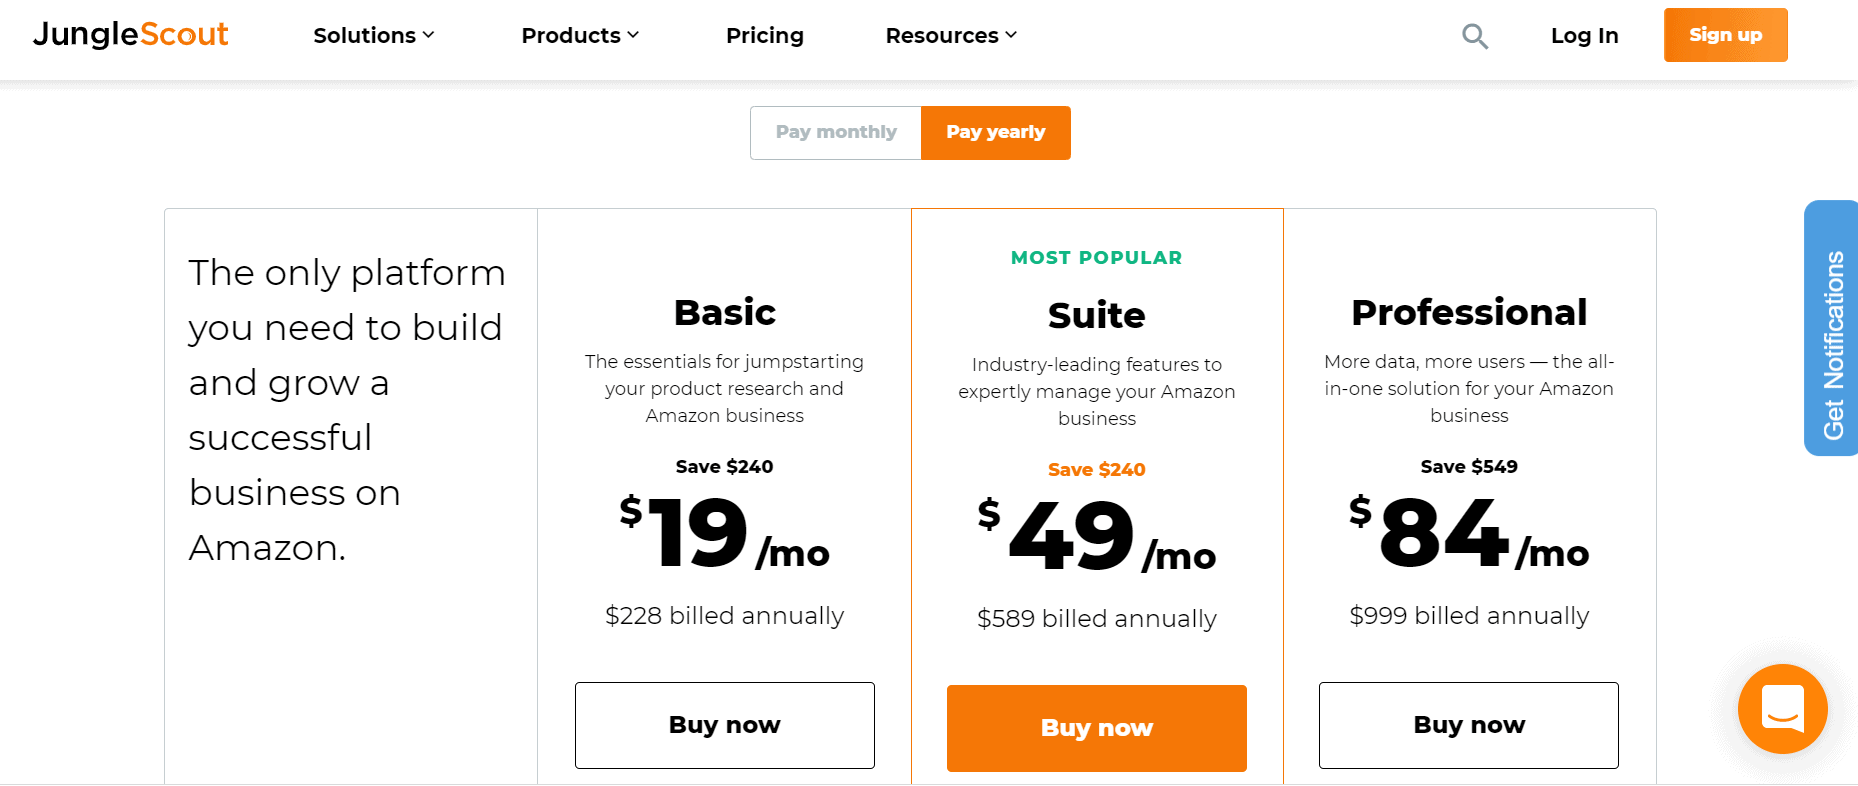 junglescout black friday pricing plans